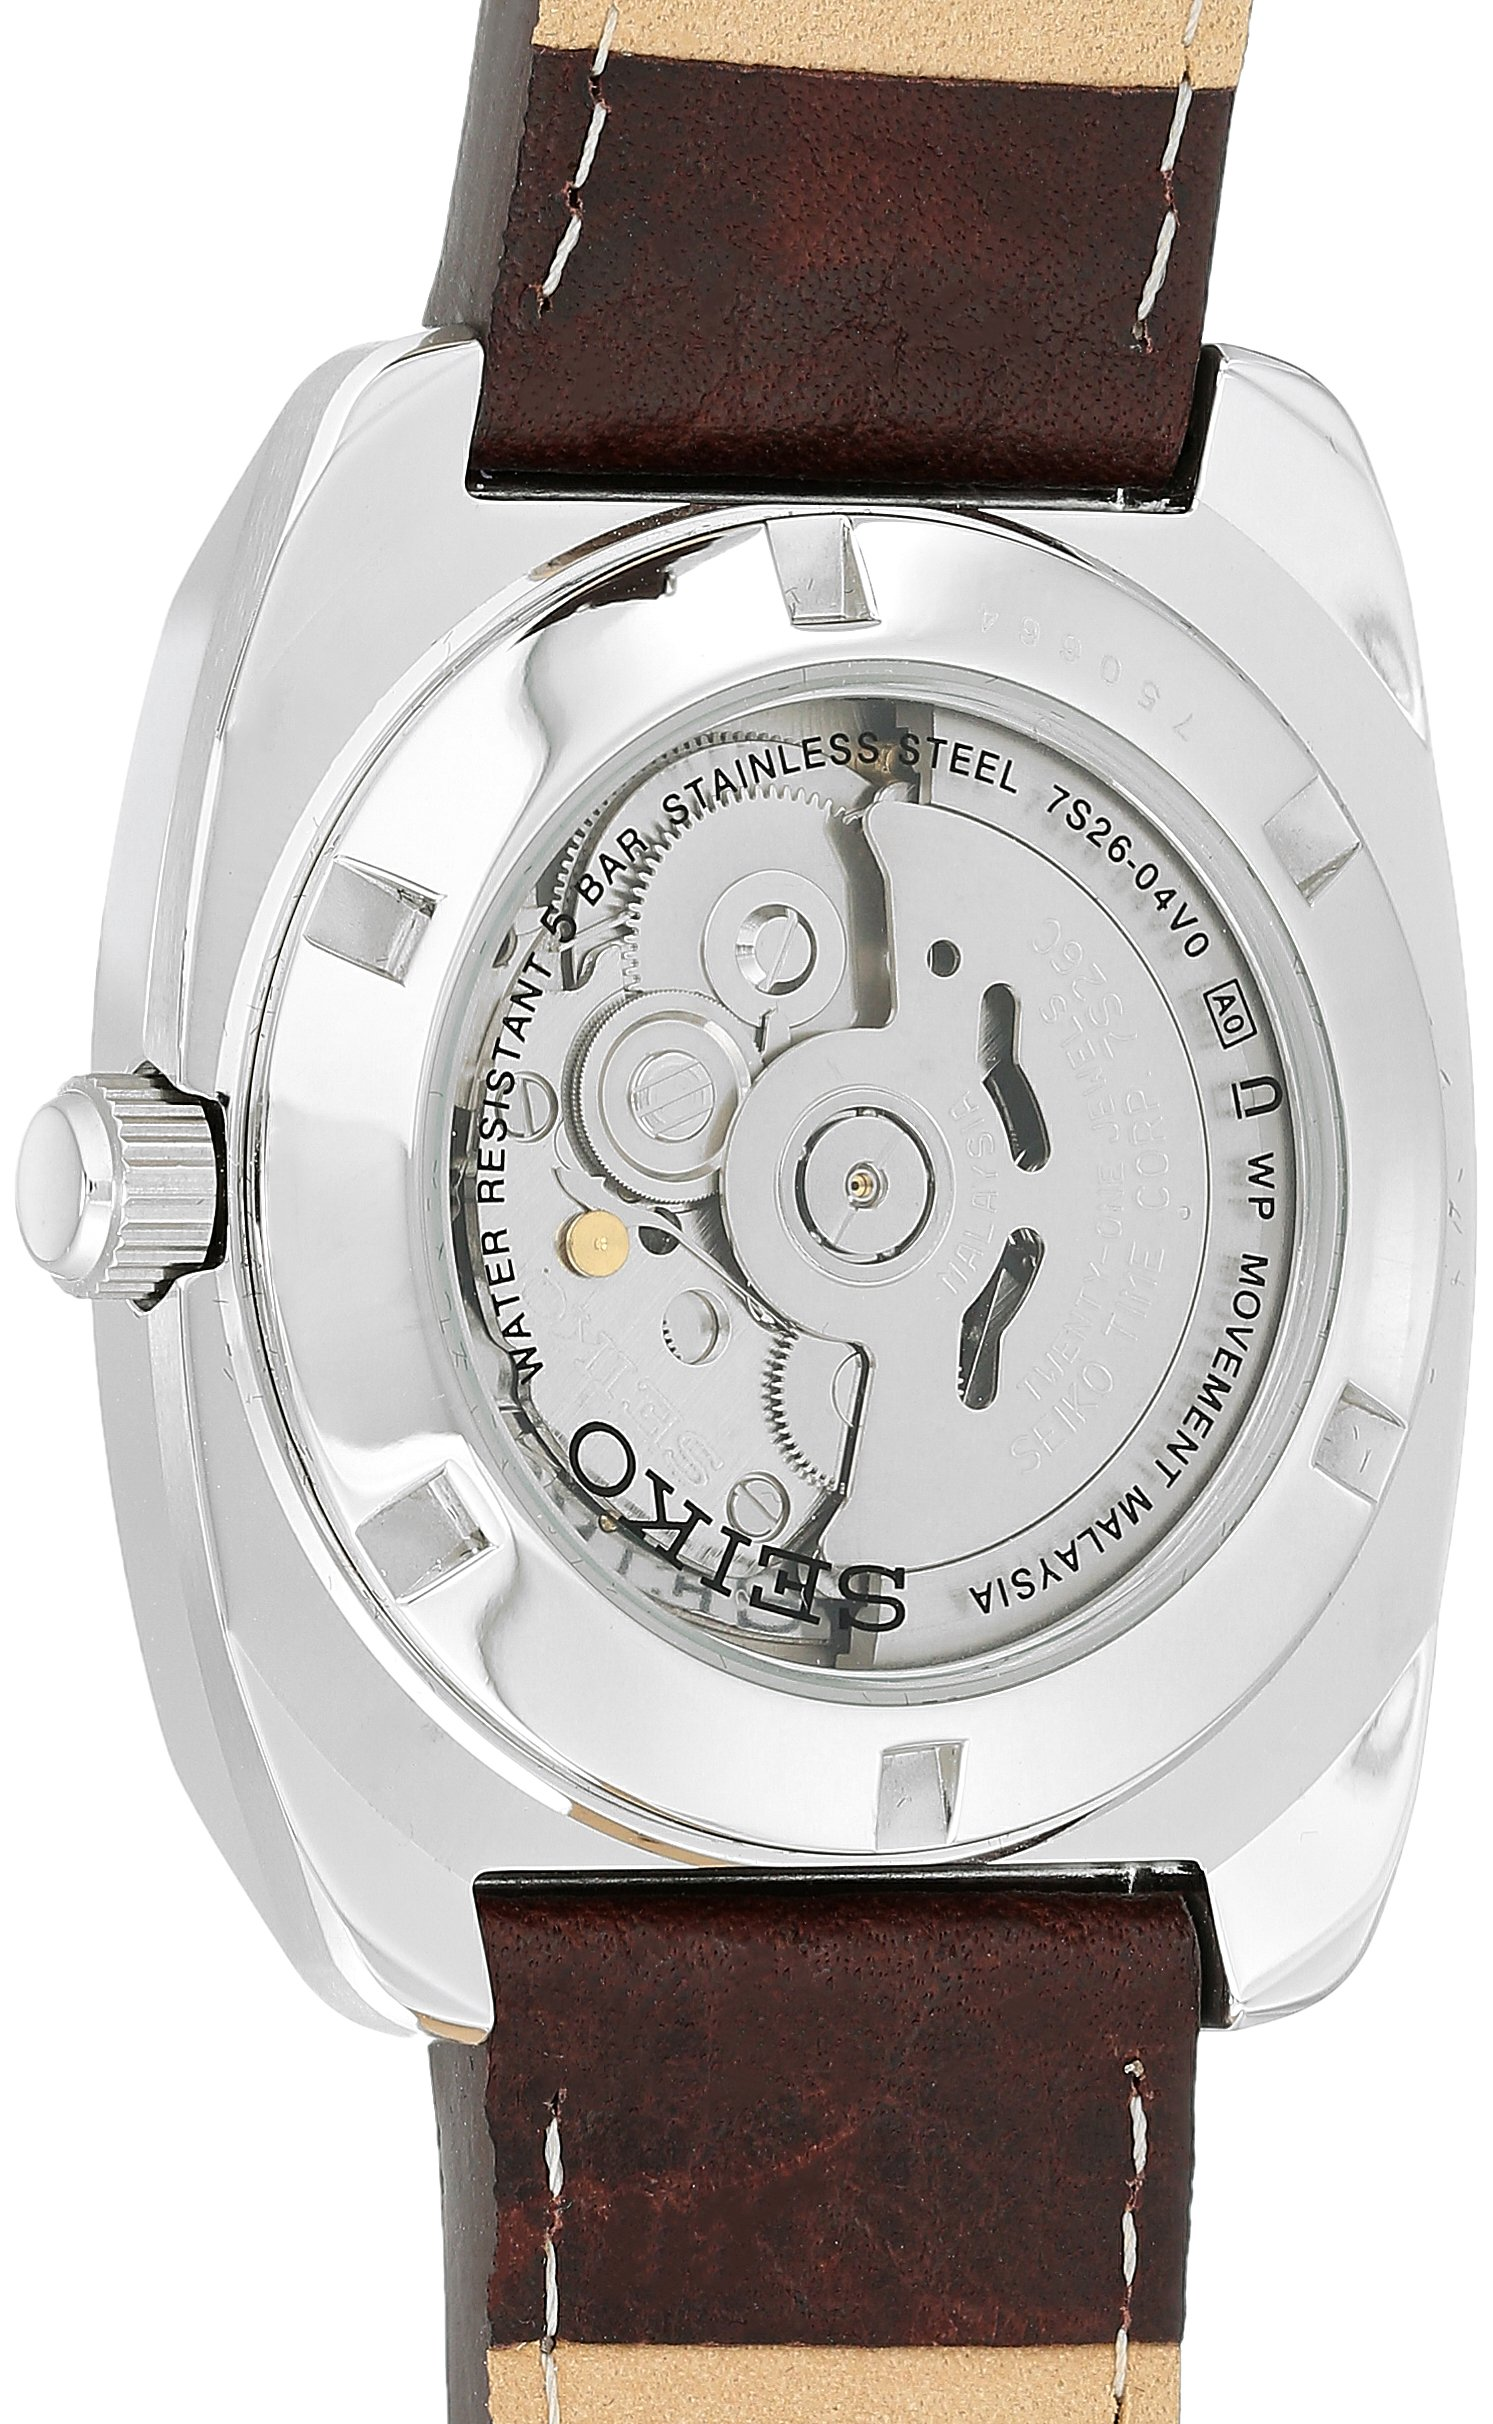 Seiko Men's Recraft Series Automatic Leather Casual Watch (Model: SNKP27) by SEIKO (Image #2)